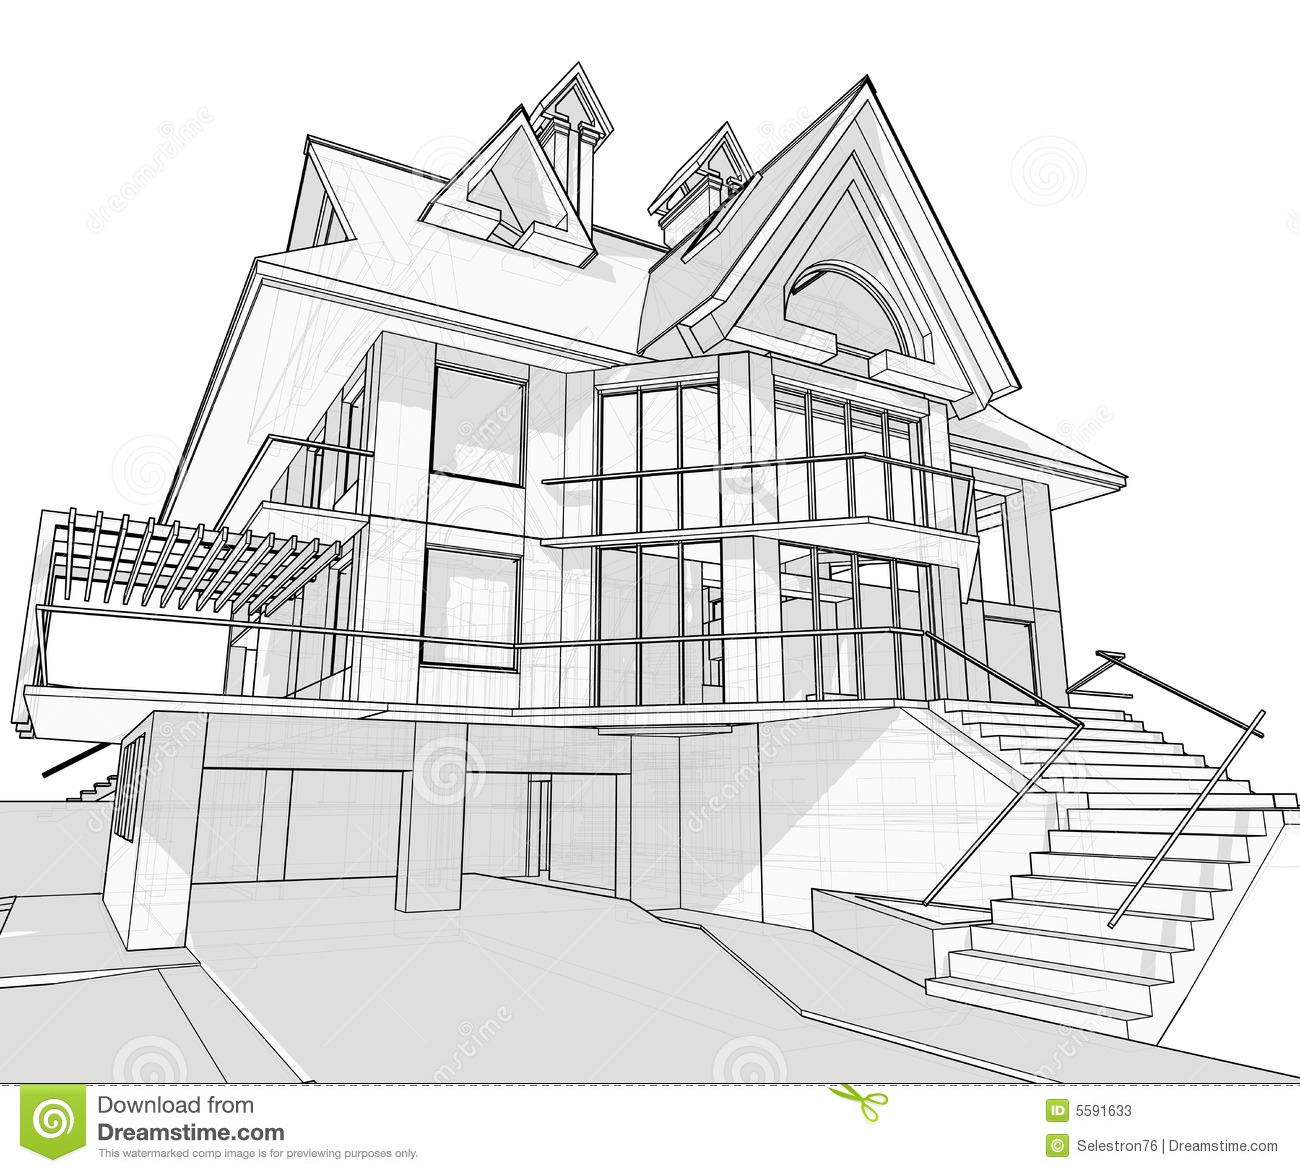 House architecture blueprint stock vector illustration of house architecture blueprint element development malvernweather